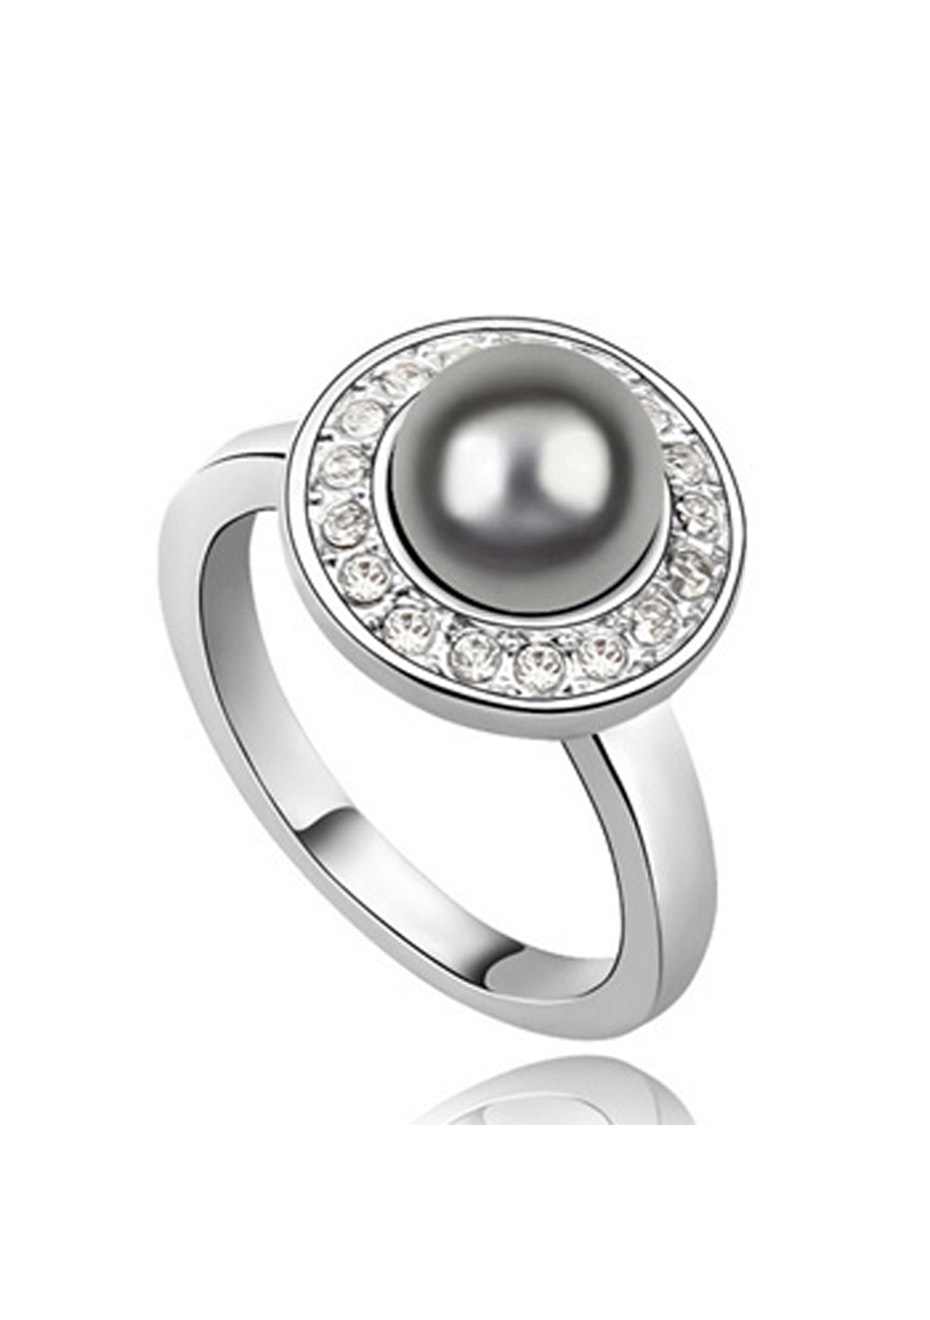 Shiraz Ring Embellished with Crystals from Swarovski -GRY